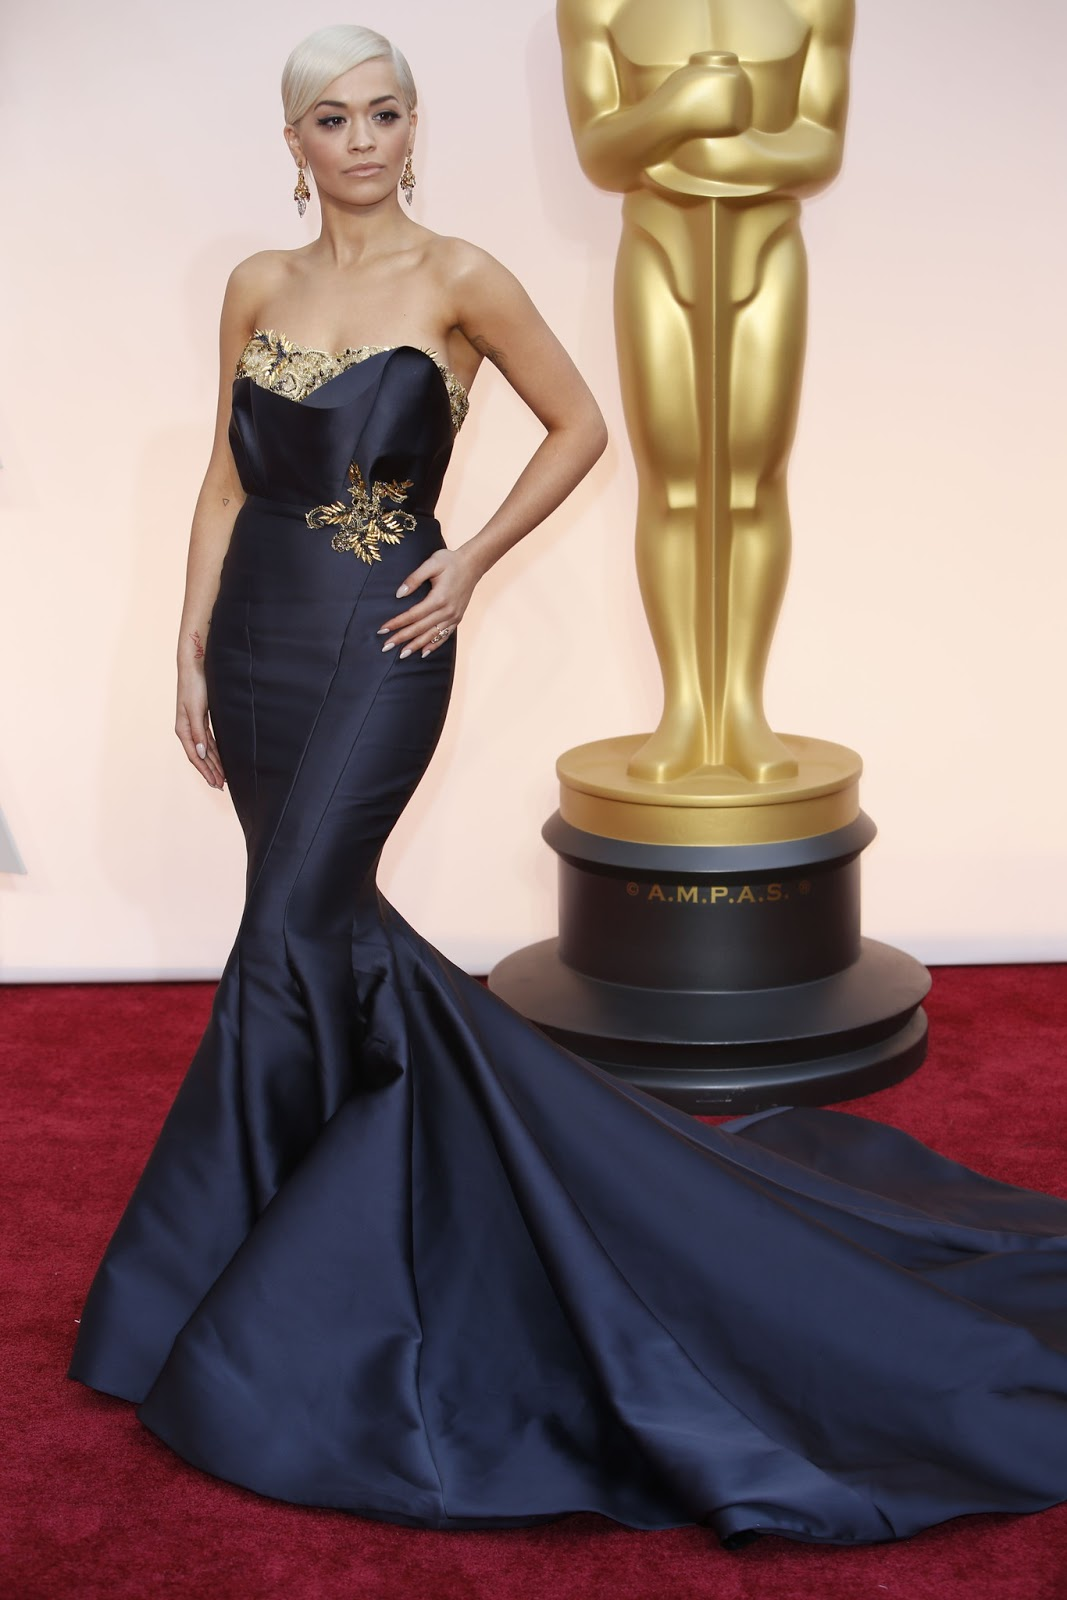 Rita Ora in Marchesa at the Oscars 2015